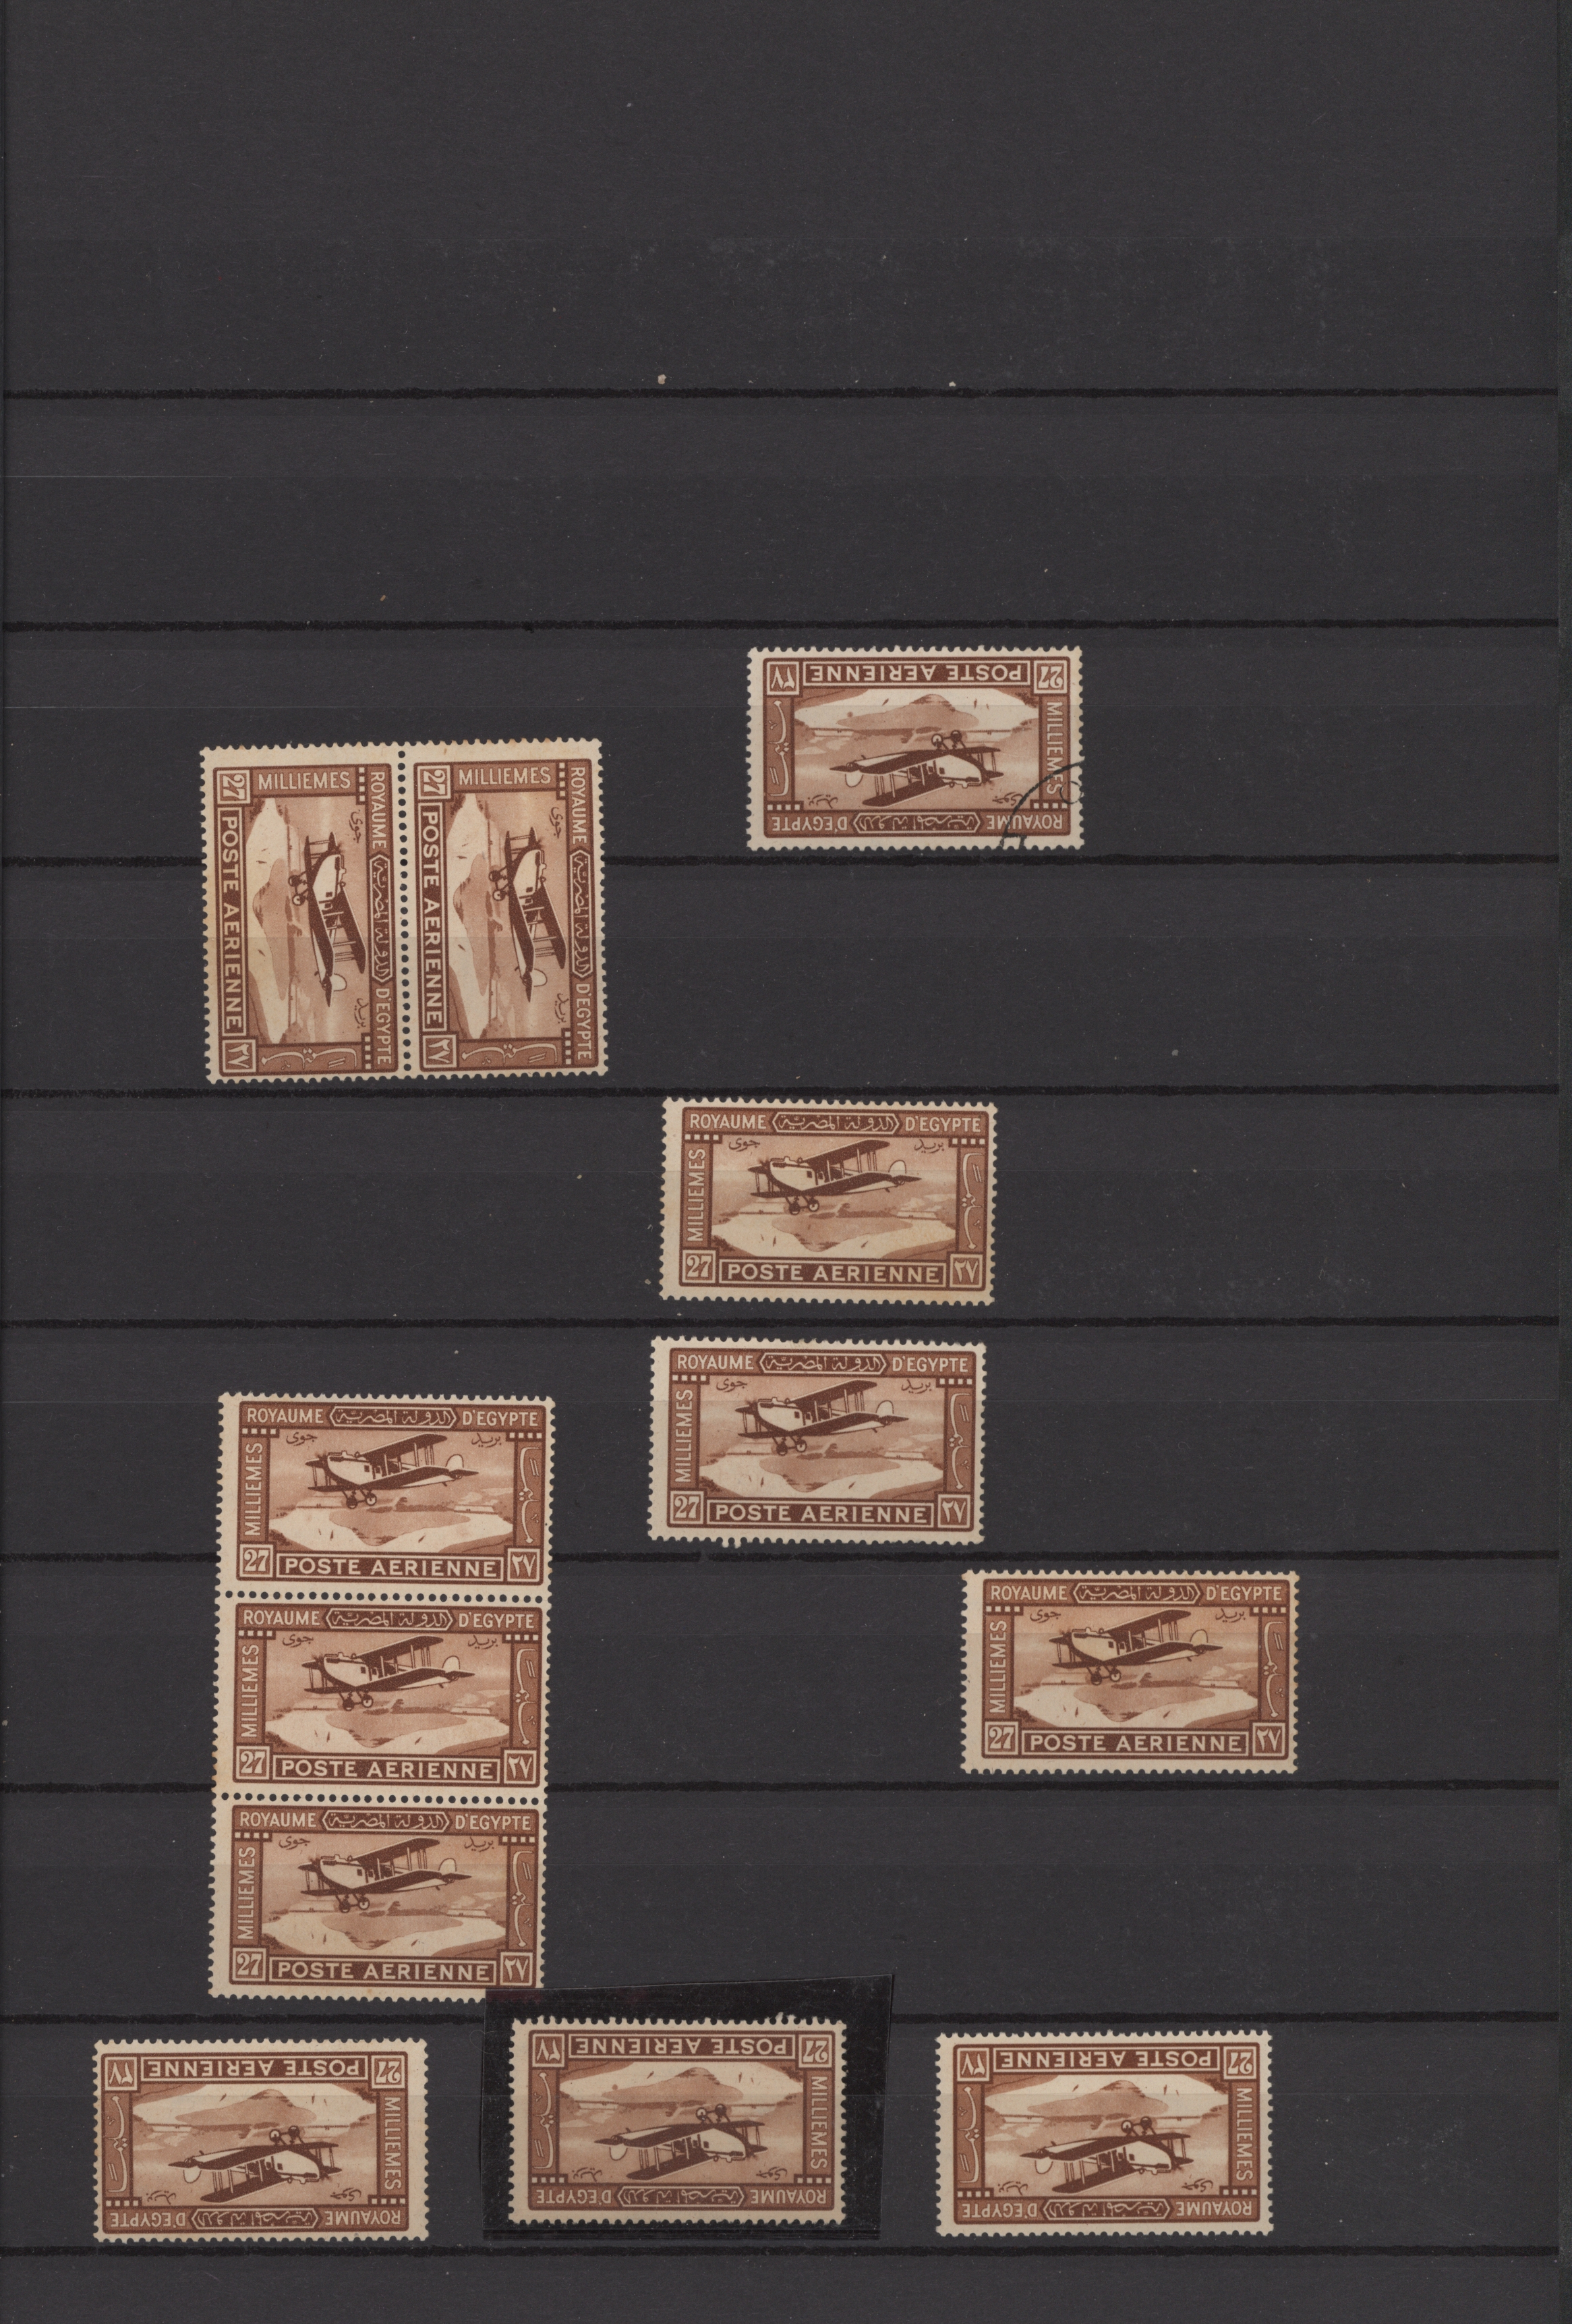 Lot 16016 - ägypten  -  Auktionshaus Christoph Gärtner GmbH & Co. KG Sale #49 Collections Overseas, Thematics, Europe, Germany/Estates